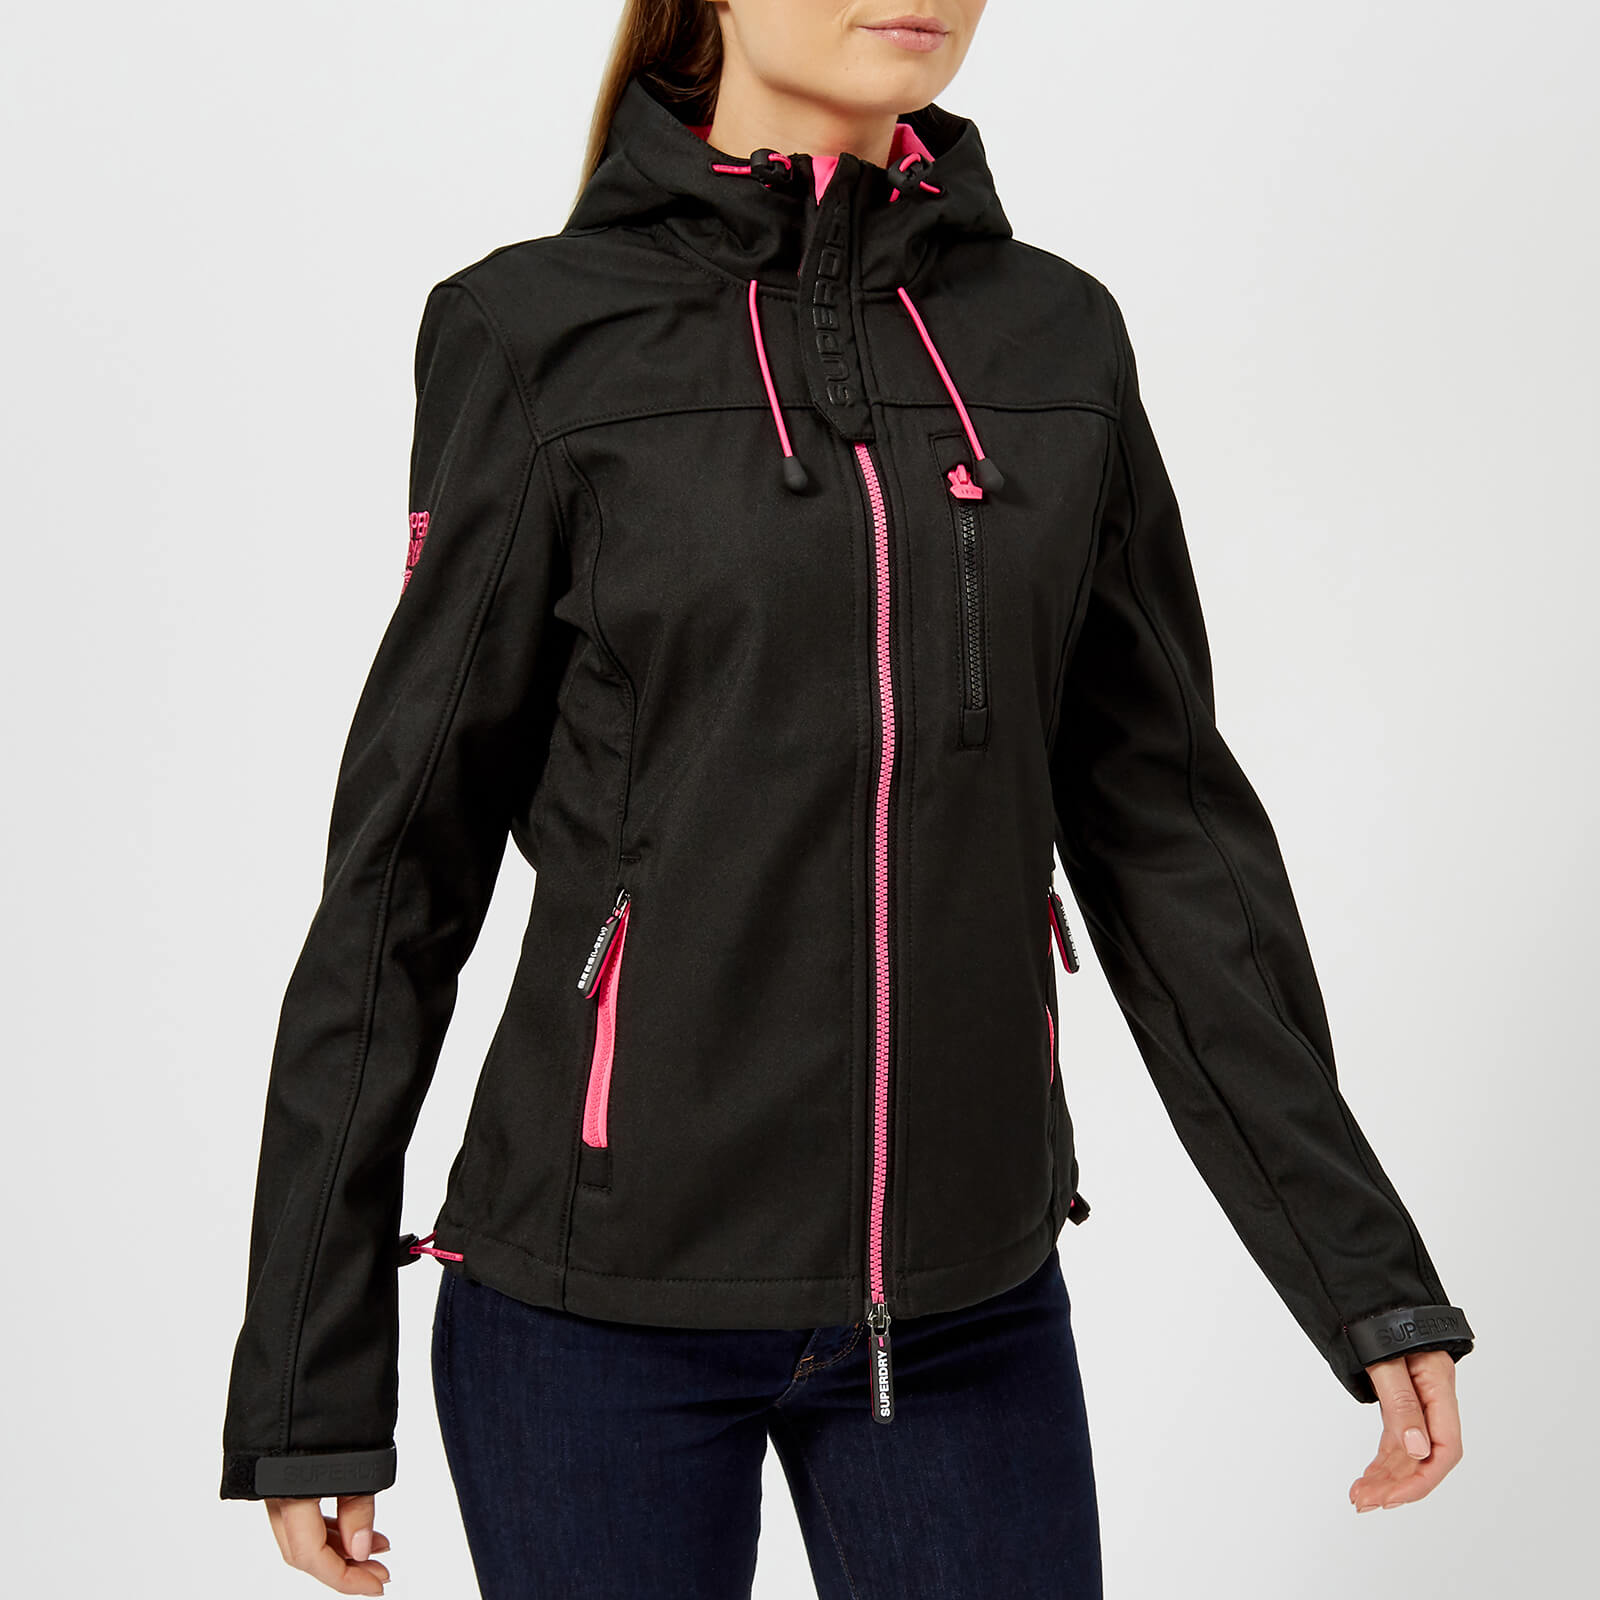 competitive price f7587 d0a98 Superdry Women's Hooded Windtrekker - Black/Code Pink